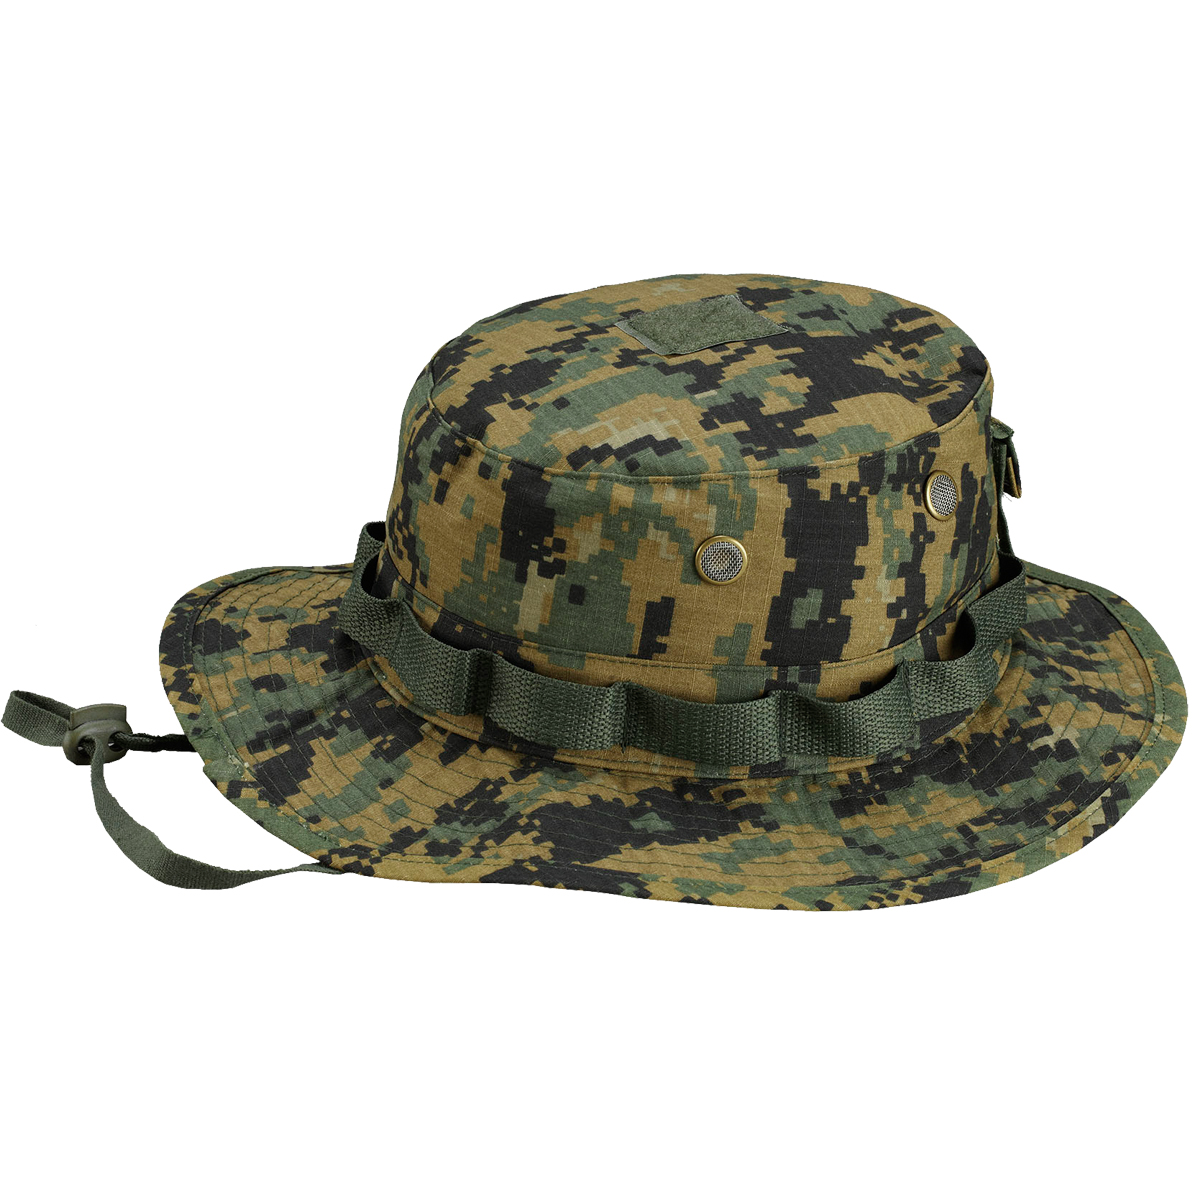 Pentagon Jungle Hat Ripstop Mens Cadet Army Patrol Usmc